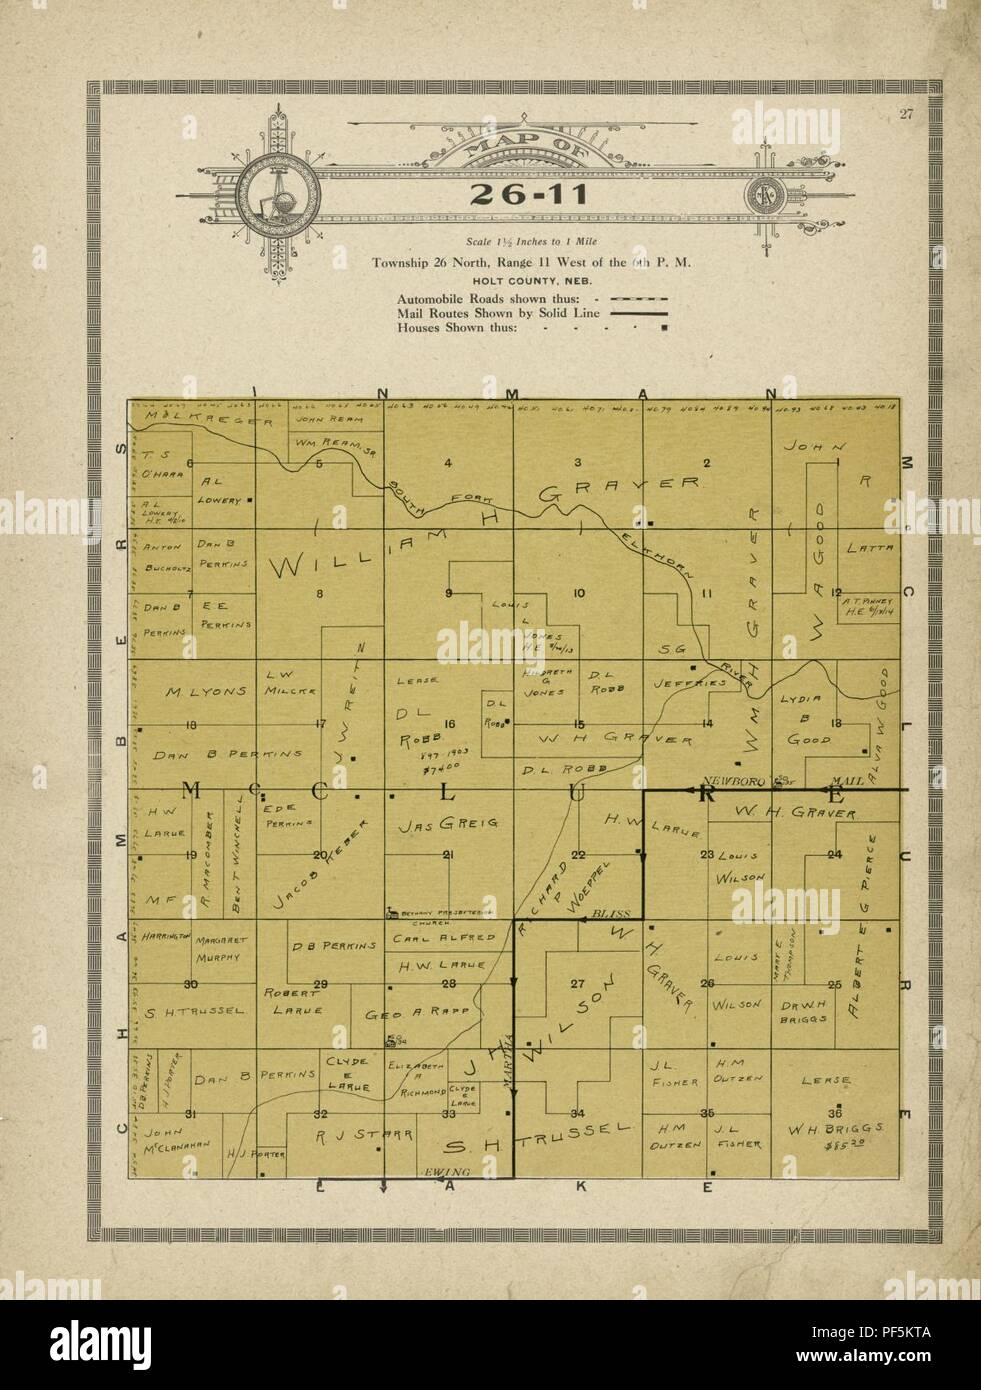 Atlas and plat book of Holt County, Nebraska - containing ...